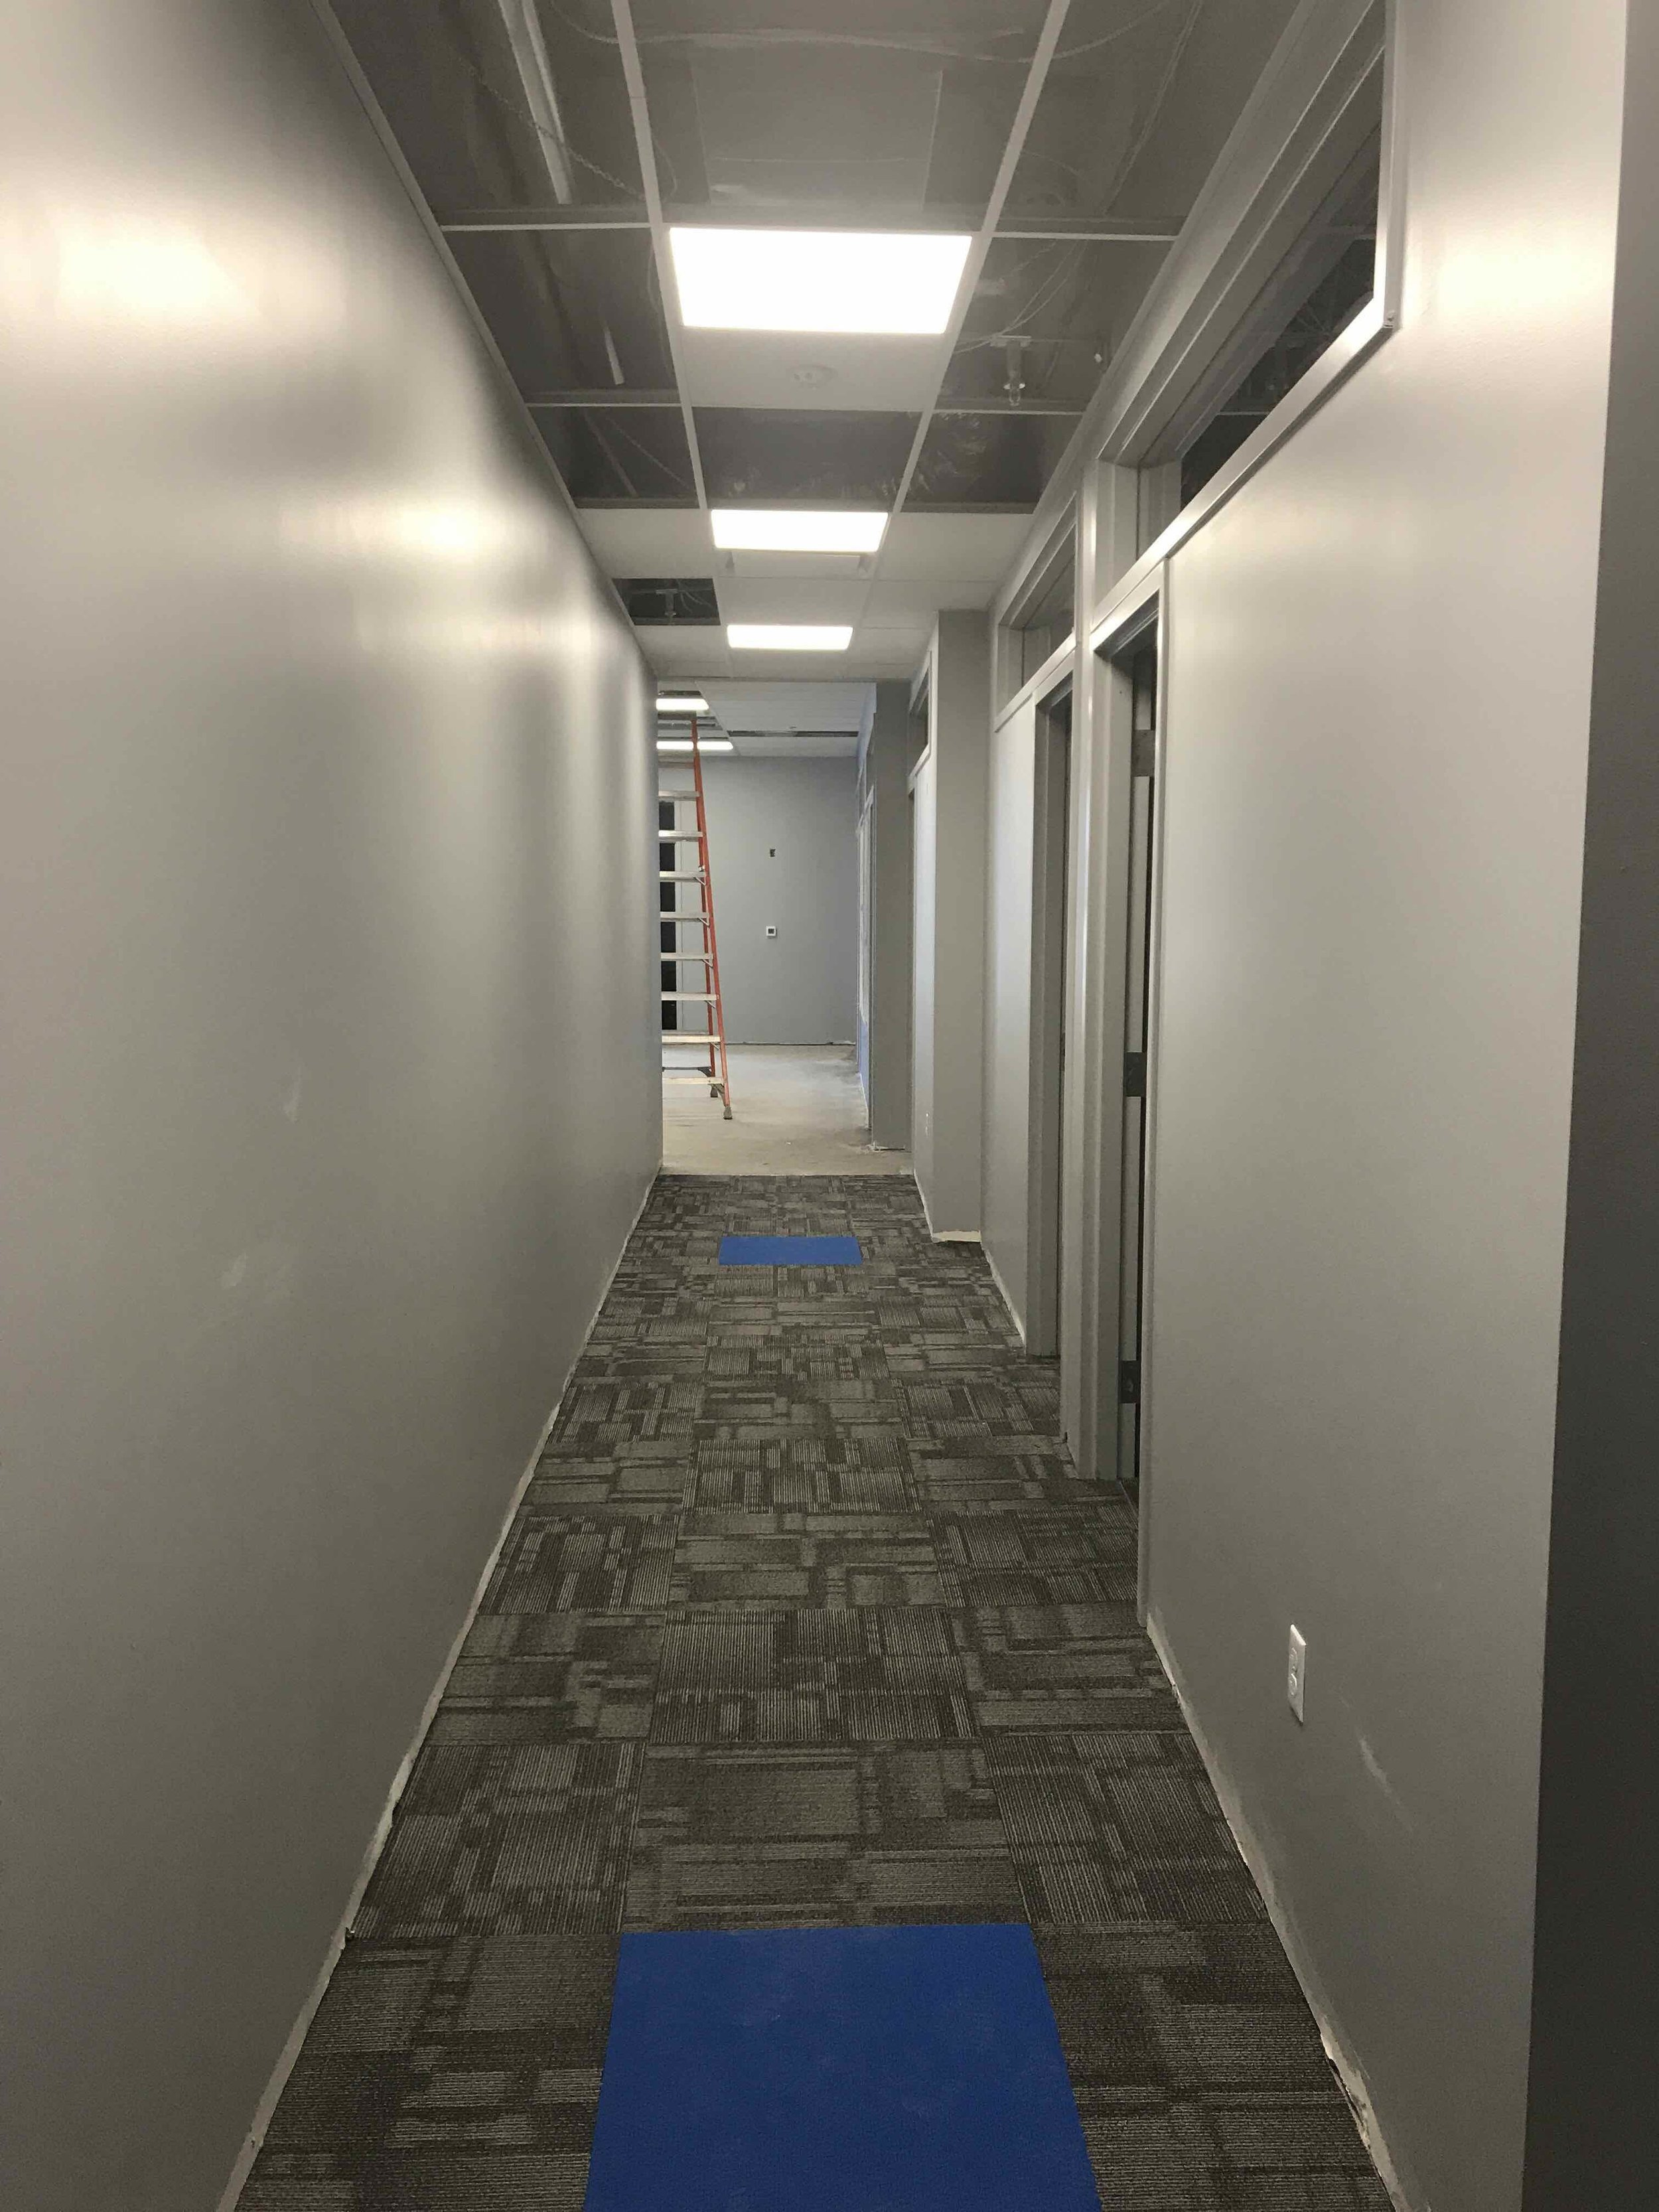 Joint Ventures Physical Therapy is coming to Quincy, MA ...